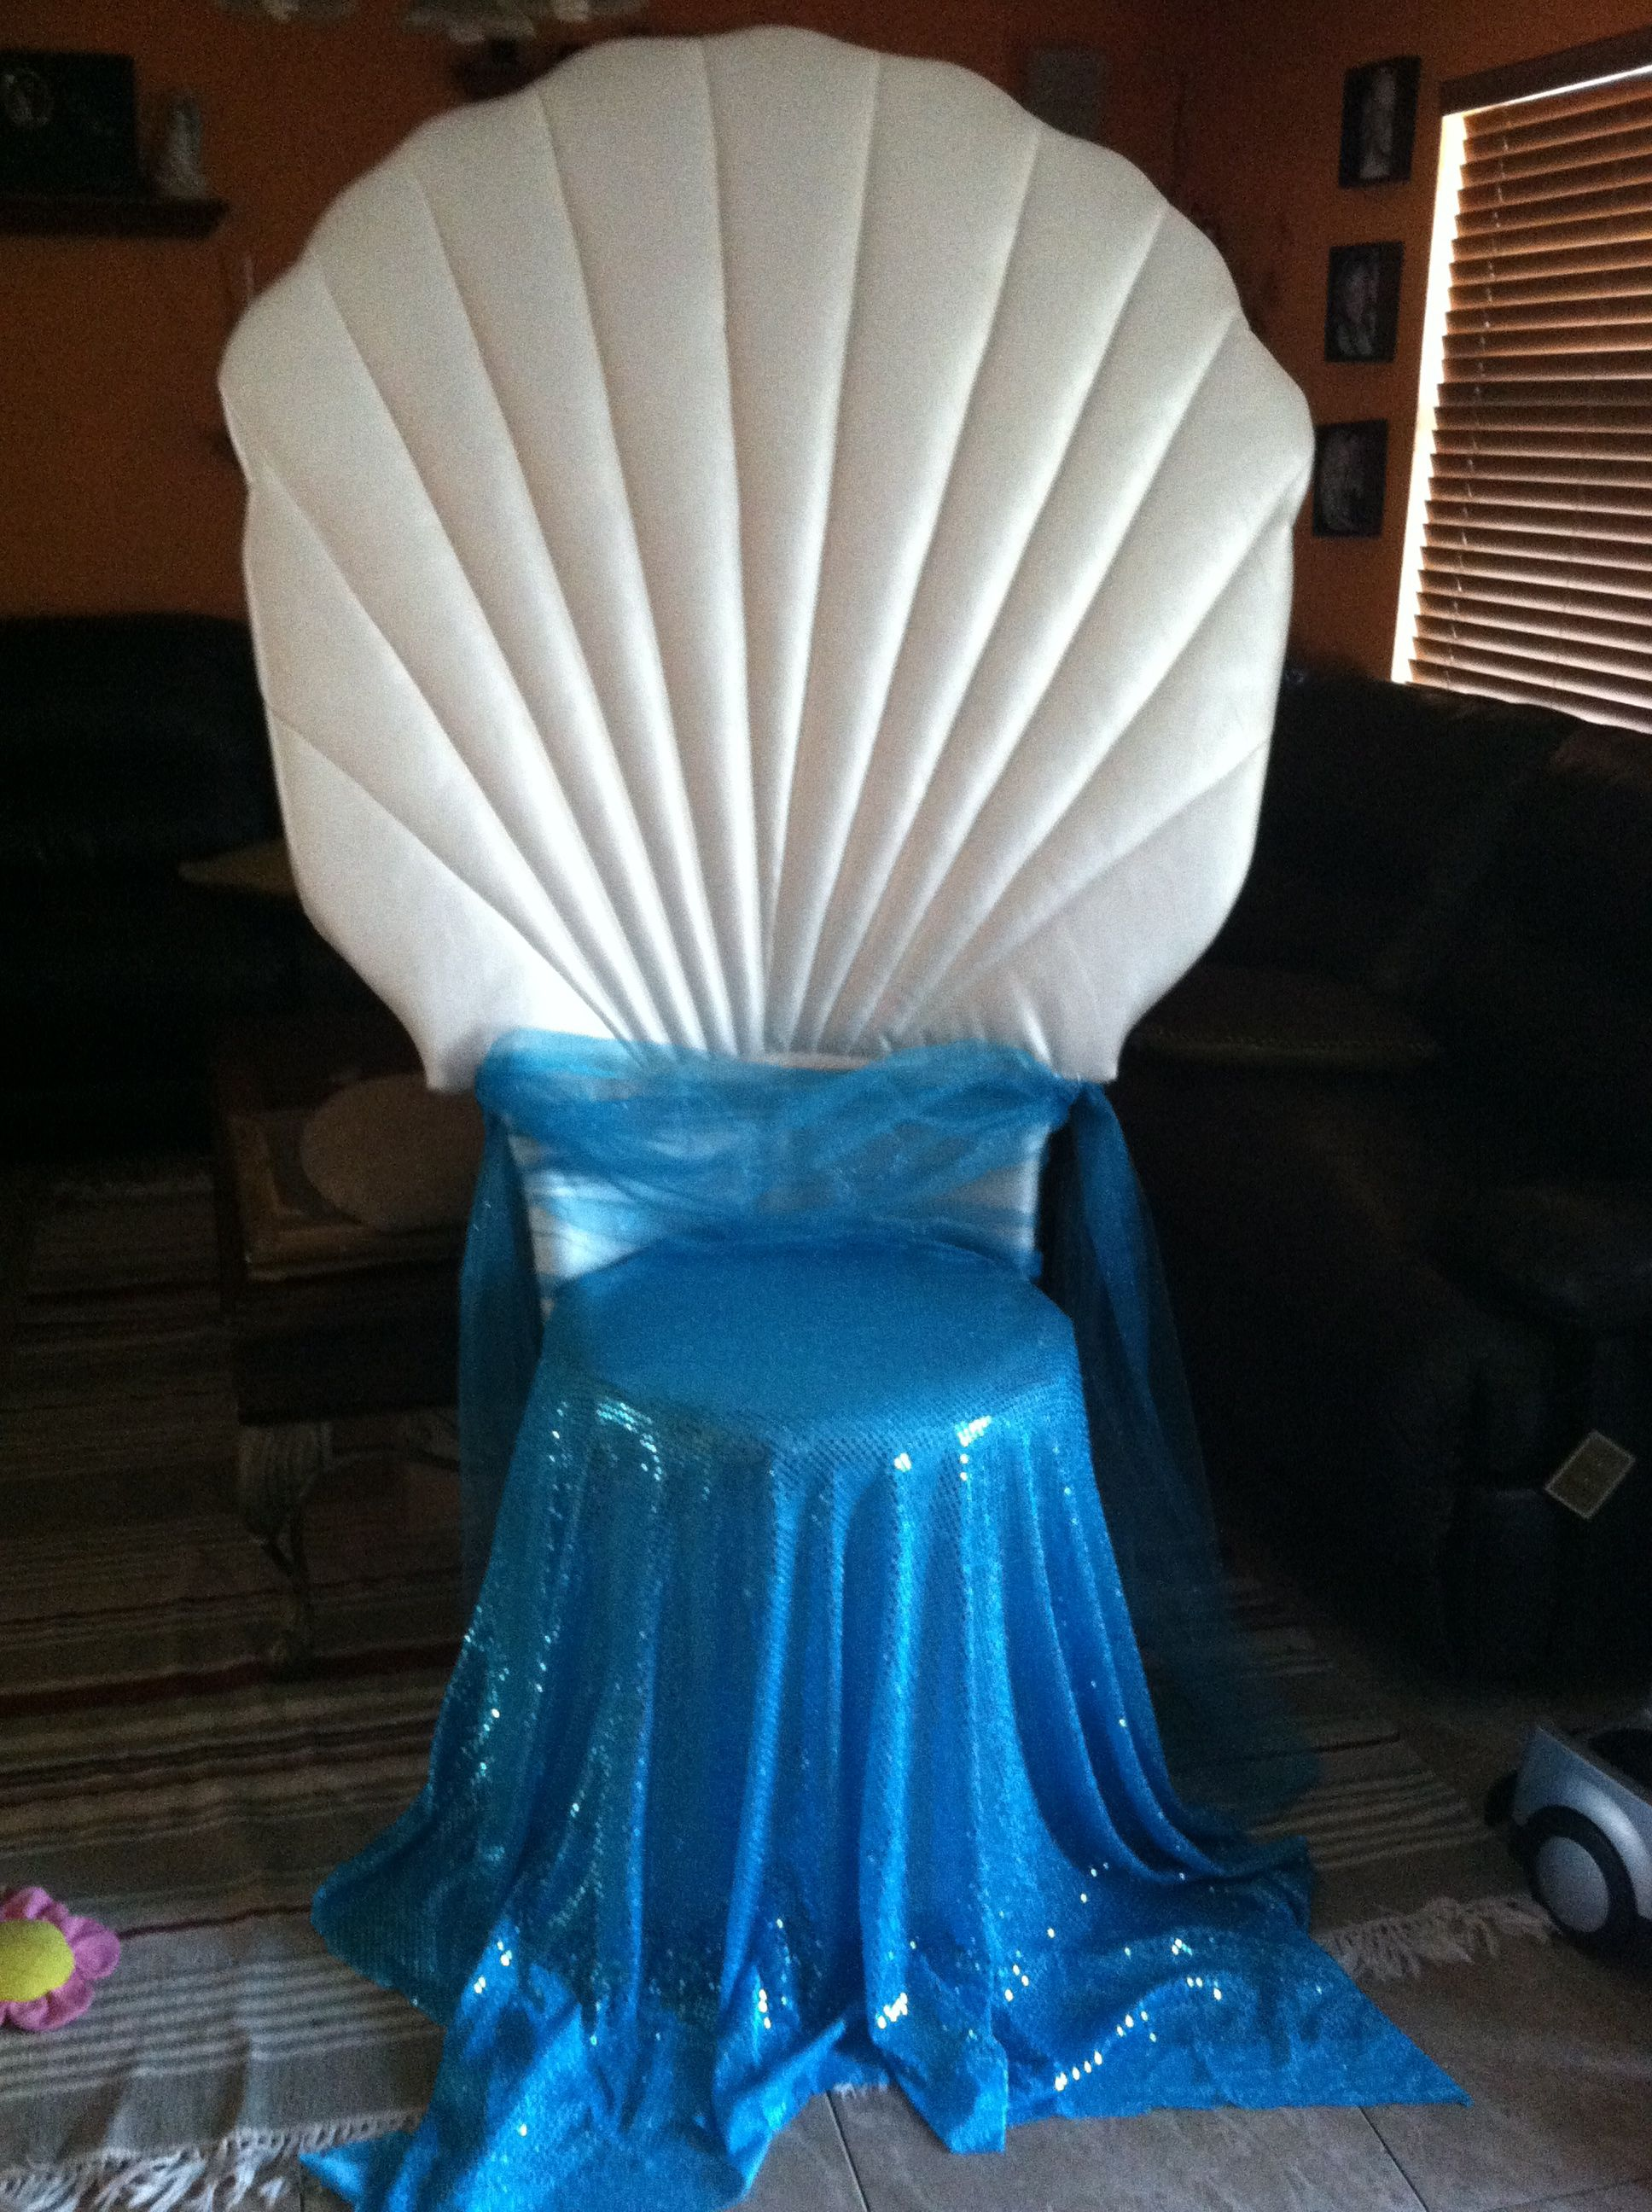 Clam Chair available for local rental